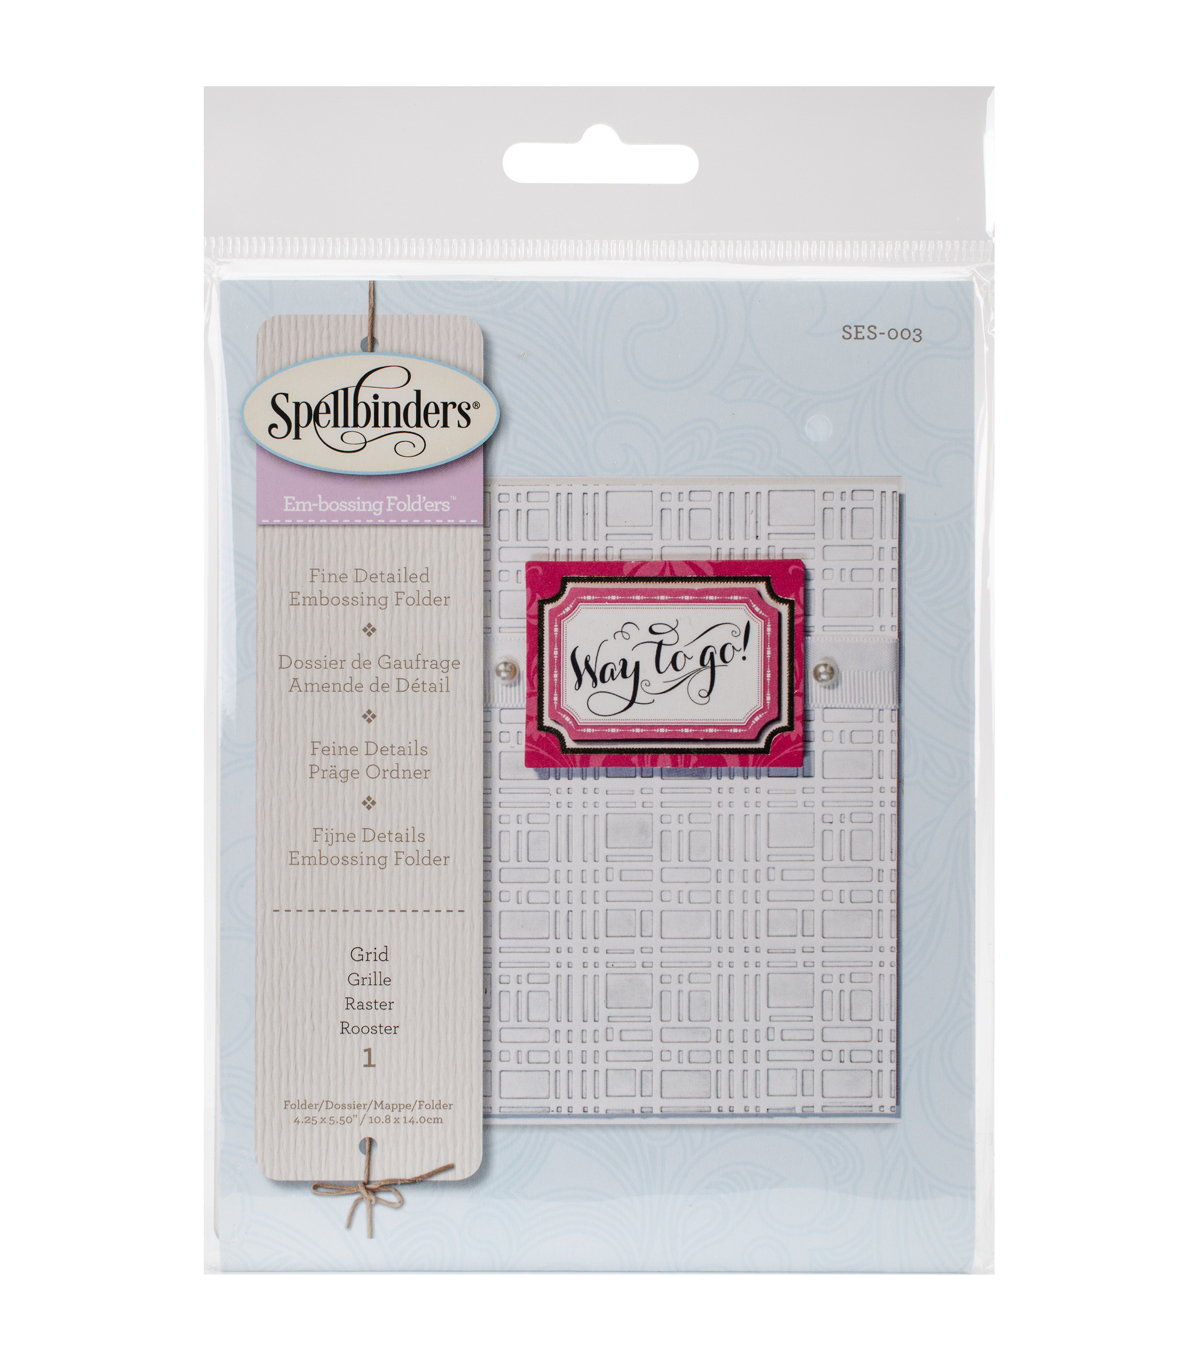 Spellbinders Small Embossing Folder-Grid